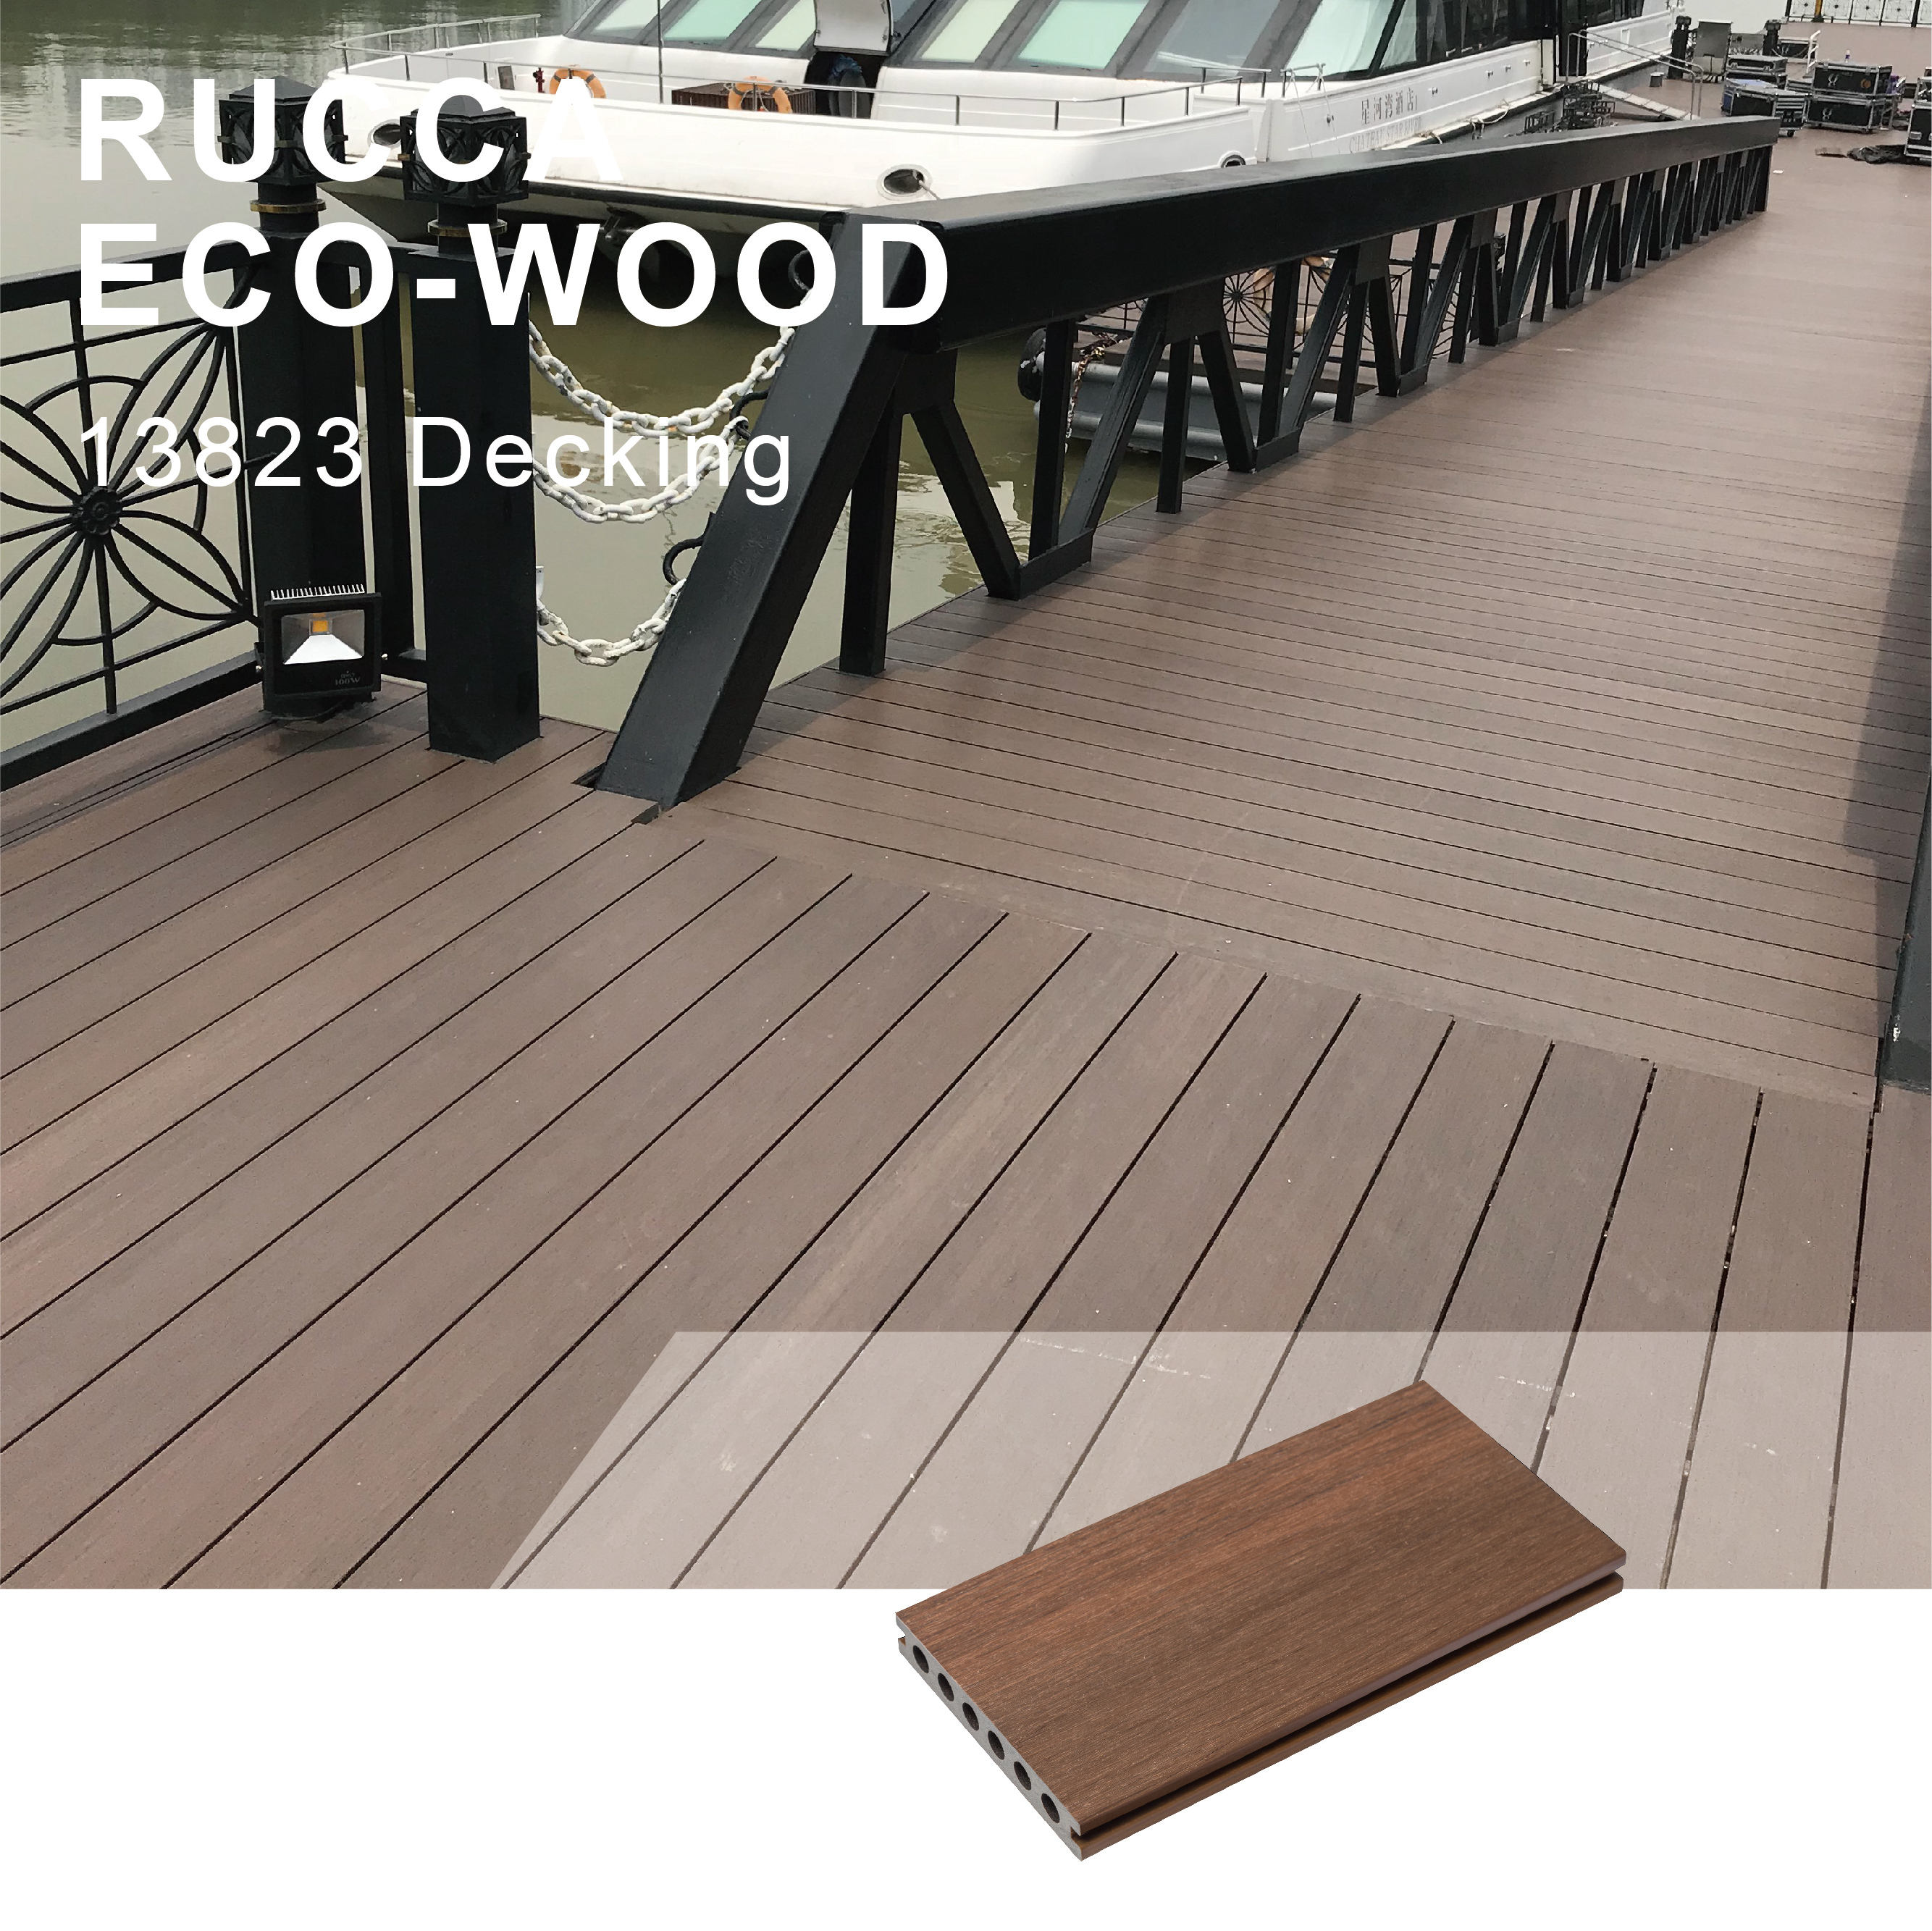 Wpc Hout Plastic Holle Composiet Waterdichte Outdoor Floor Decking, Wpc Decking 138*23 Mm